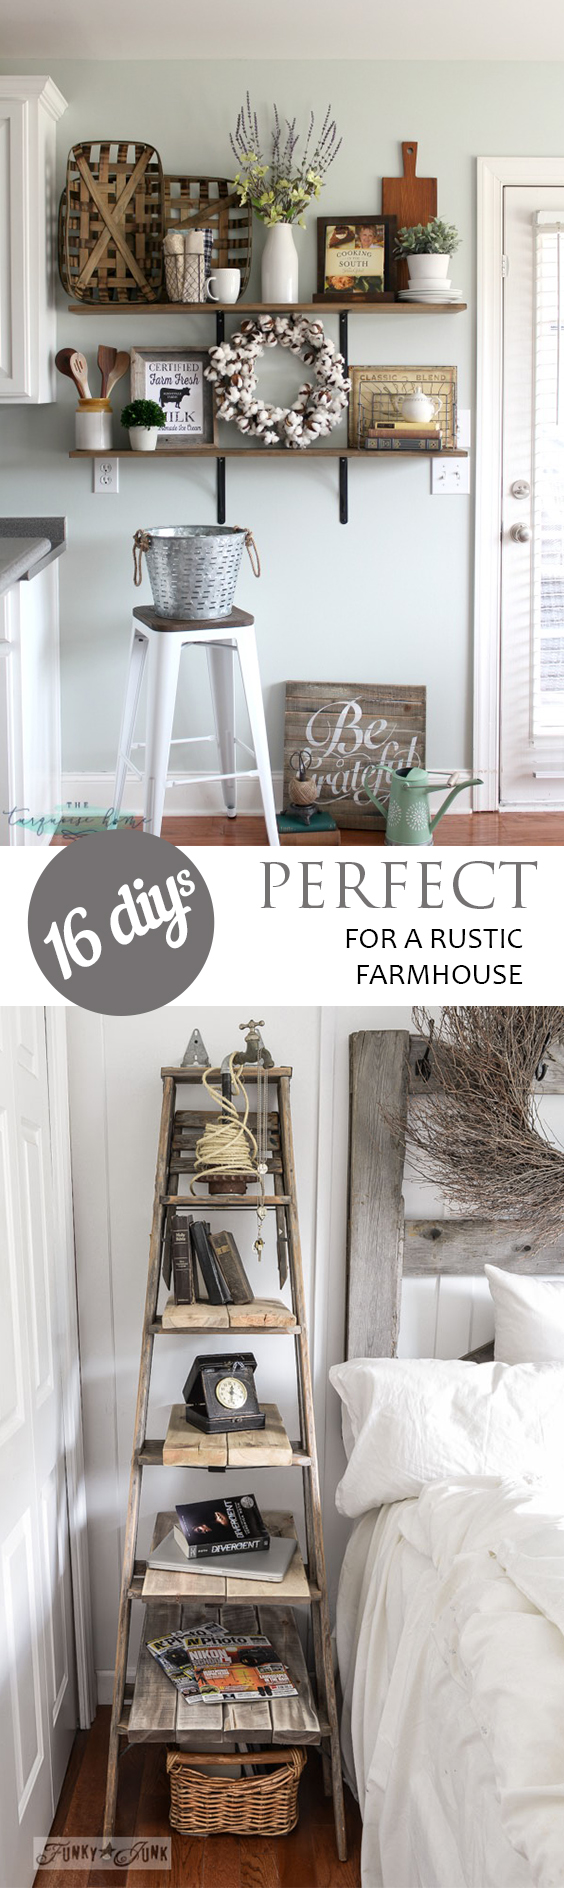 Rustic Home, Home Decor, Home DIY, Rustic Home DIY, Popular Pin, DIY Home Decor, DIY Rustic Decor For the Home, Easy Home DIY, DIY Projects for the Home, Home Decor Ideas, Home DIY Projects, Rustic Home Decor, Easy Home DIY Projects, Easy DIY Home Decor #rustichome #rustichomedecor #homedecor #diyhomedecor #homedecorprojects #easyDIYhomedecor